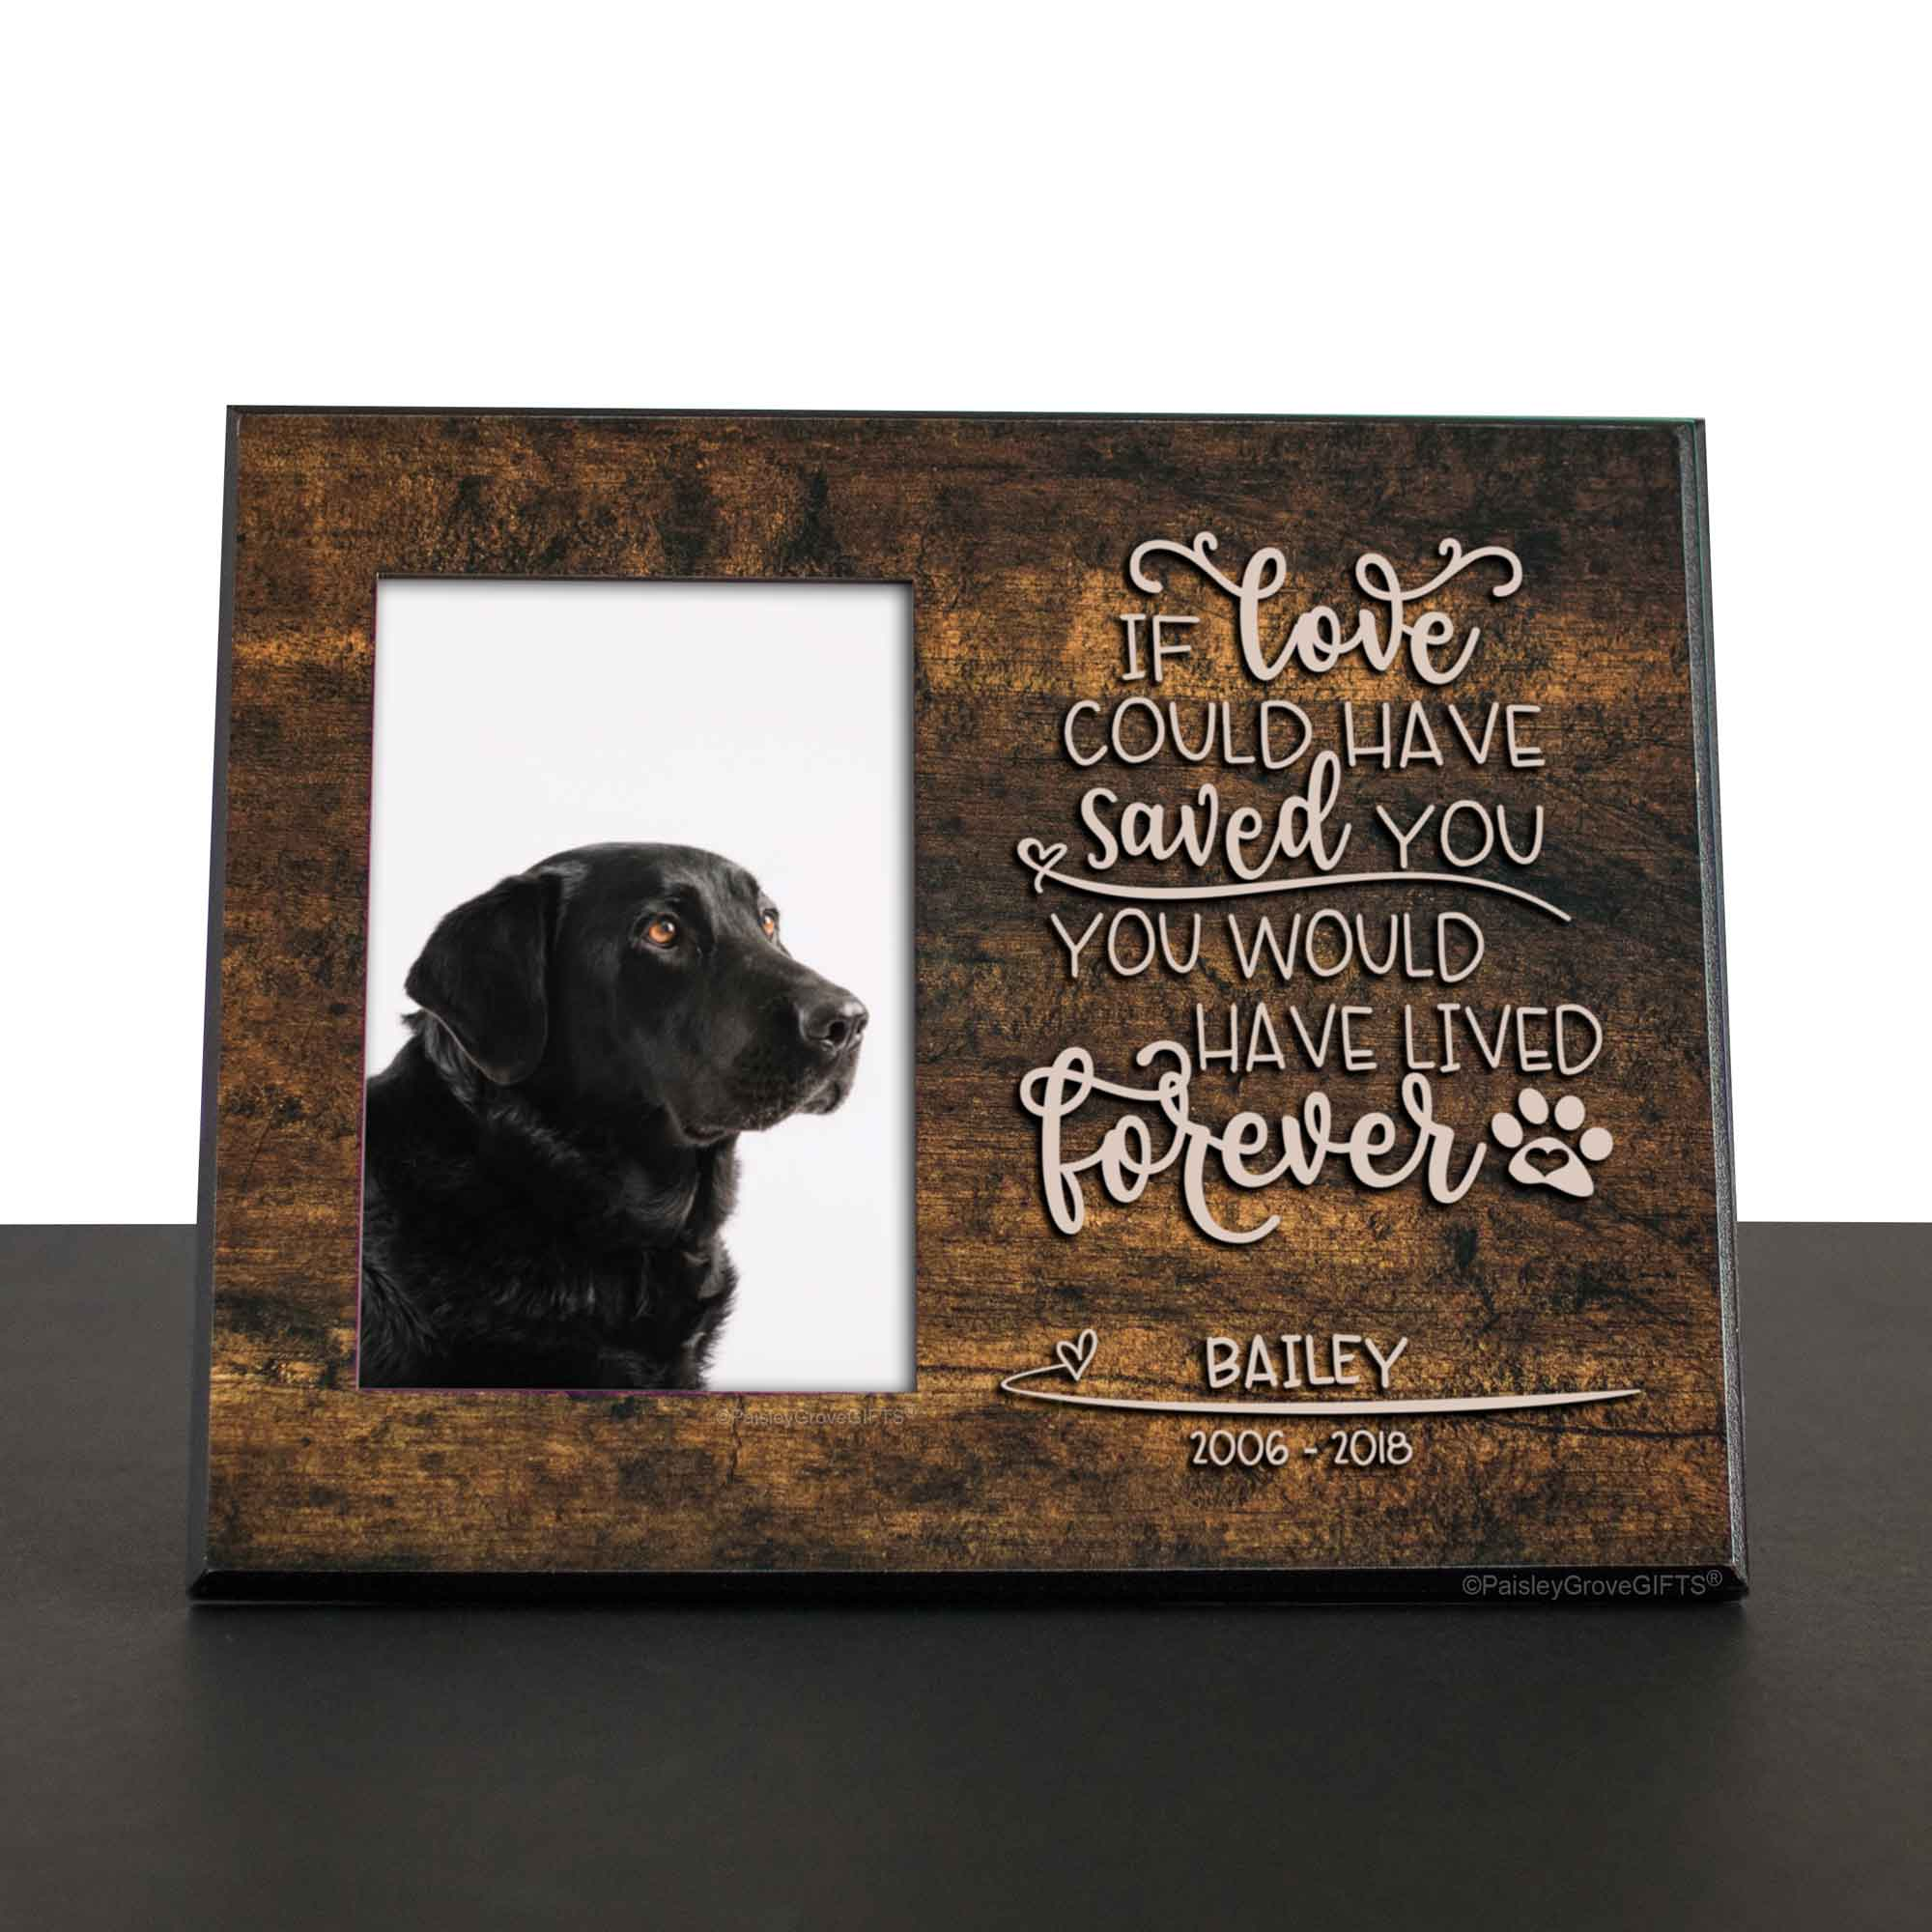 CopyrightPaisleyGroveGIFTS S280c Pug Death or Dog Loss Sympathy Gift for Pet Death Remembrance Frame